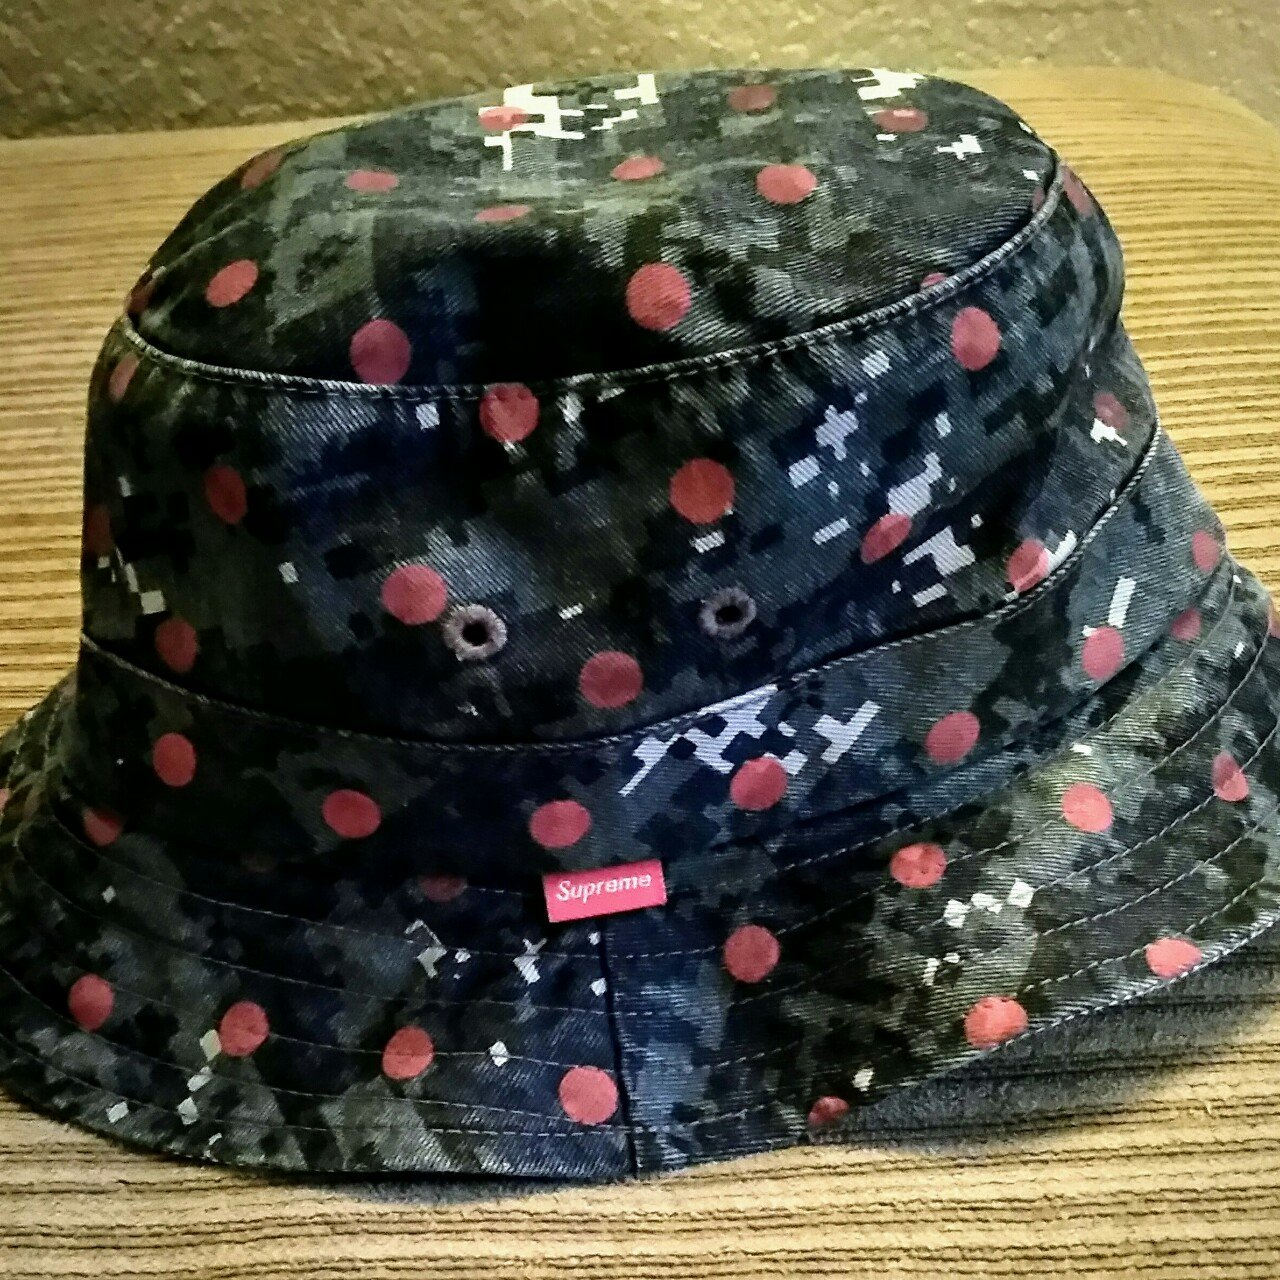 Supreme Bucket Hat Small medium Pre owned Good condition No 7097cc079ad5